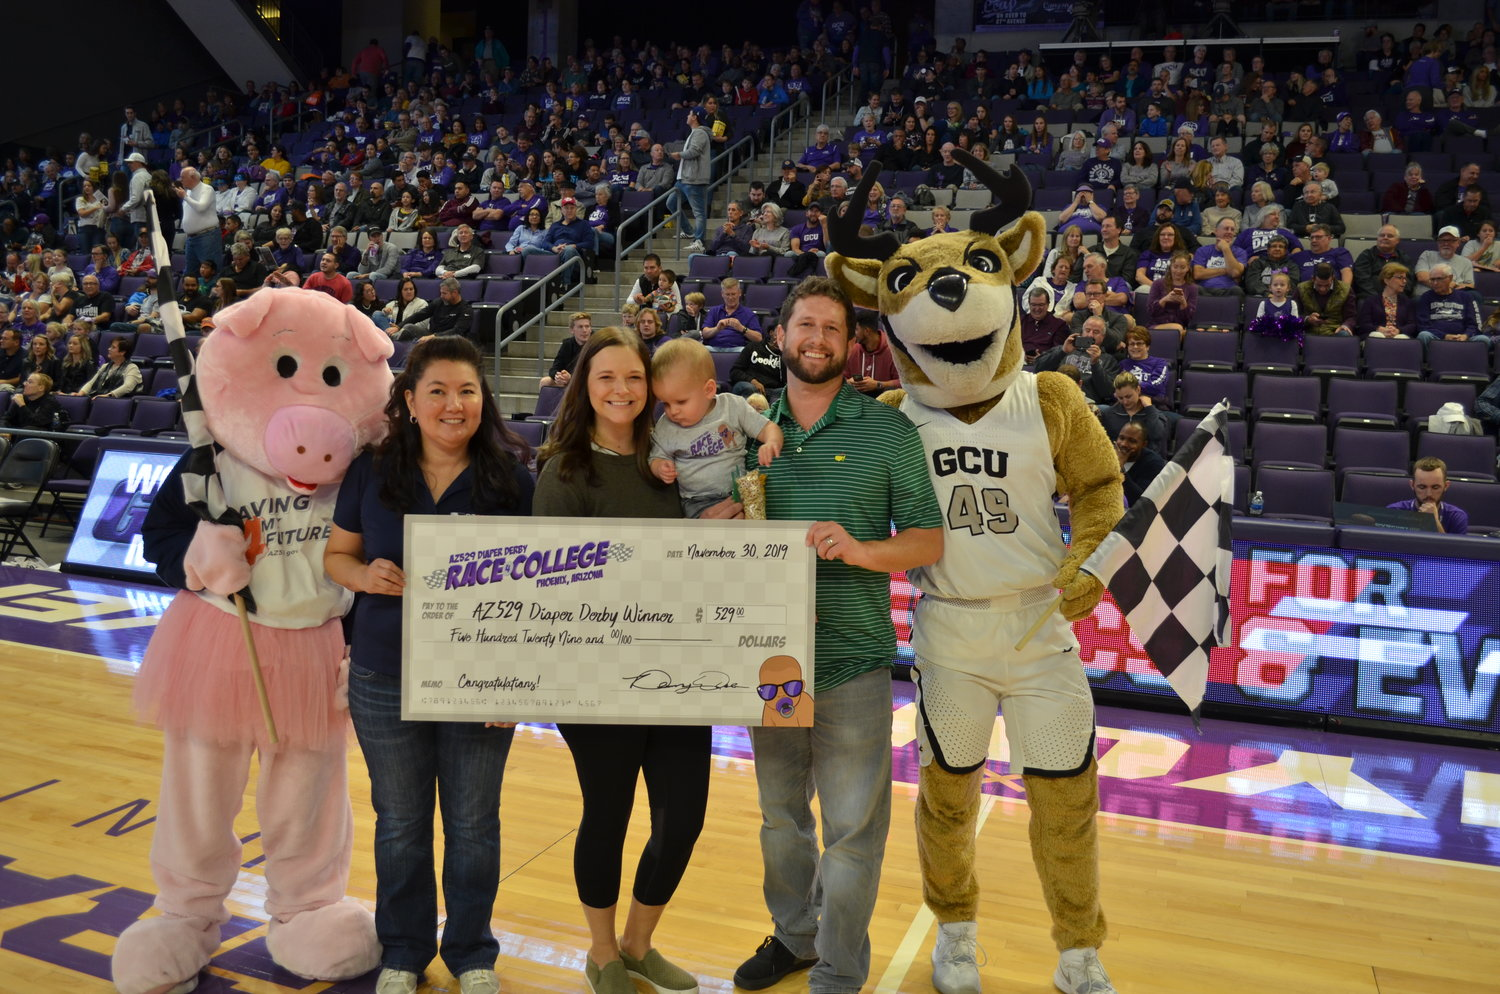 Jax and his family with the check for winning the diaper derby at Grand Canyon University.